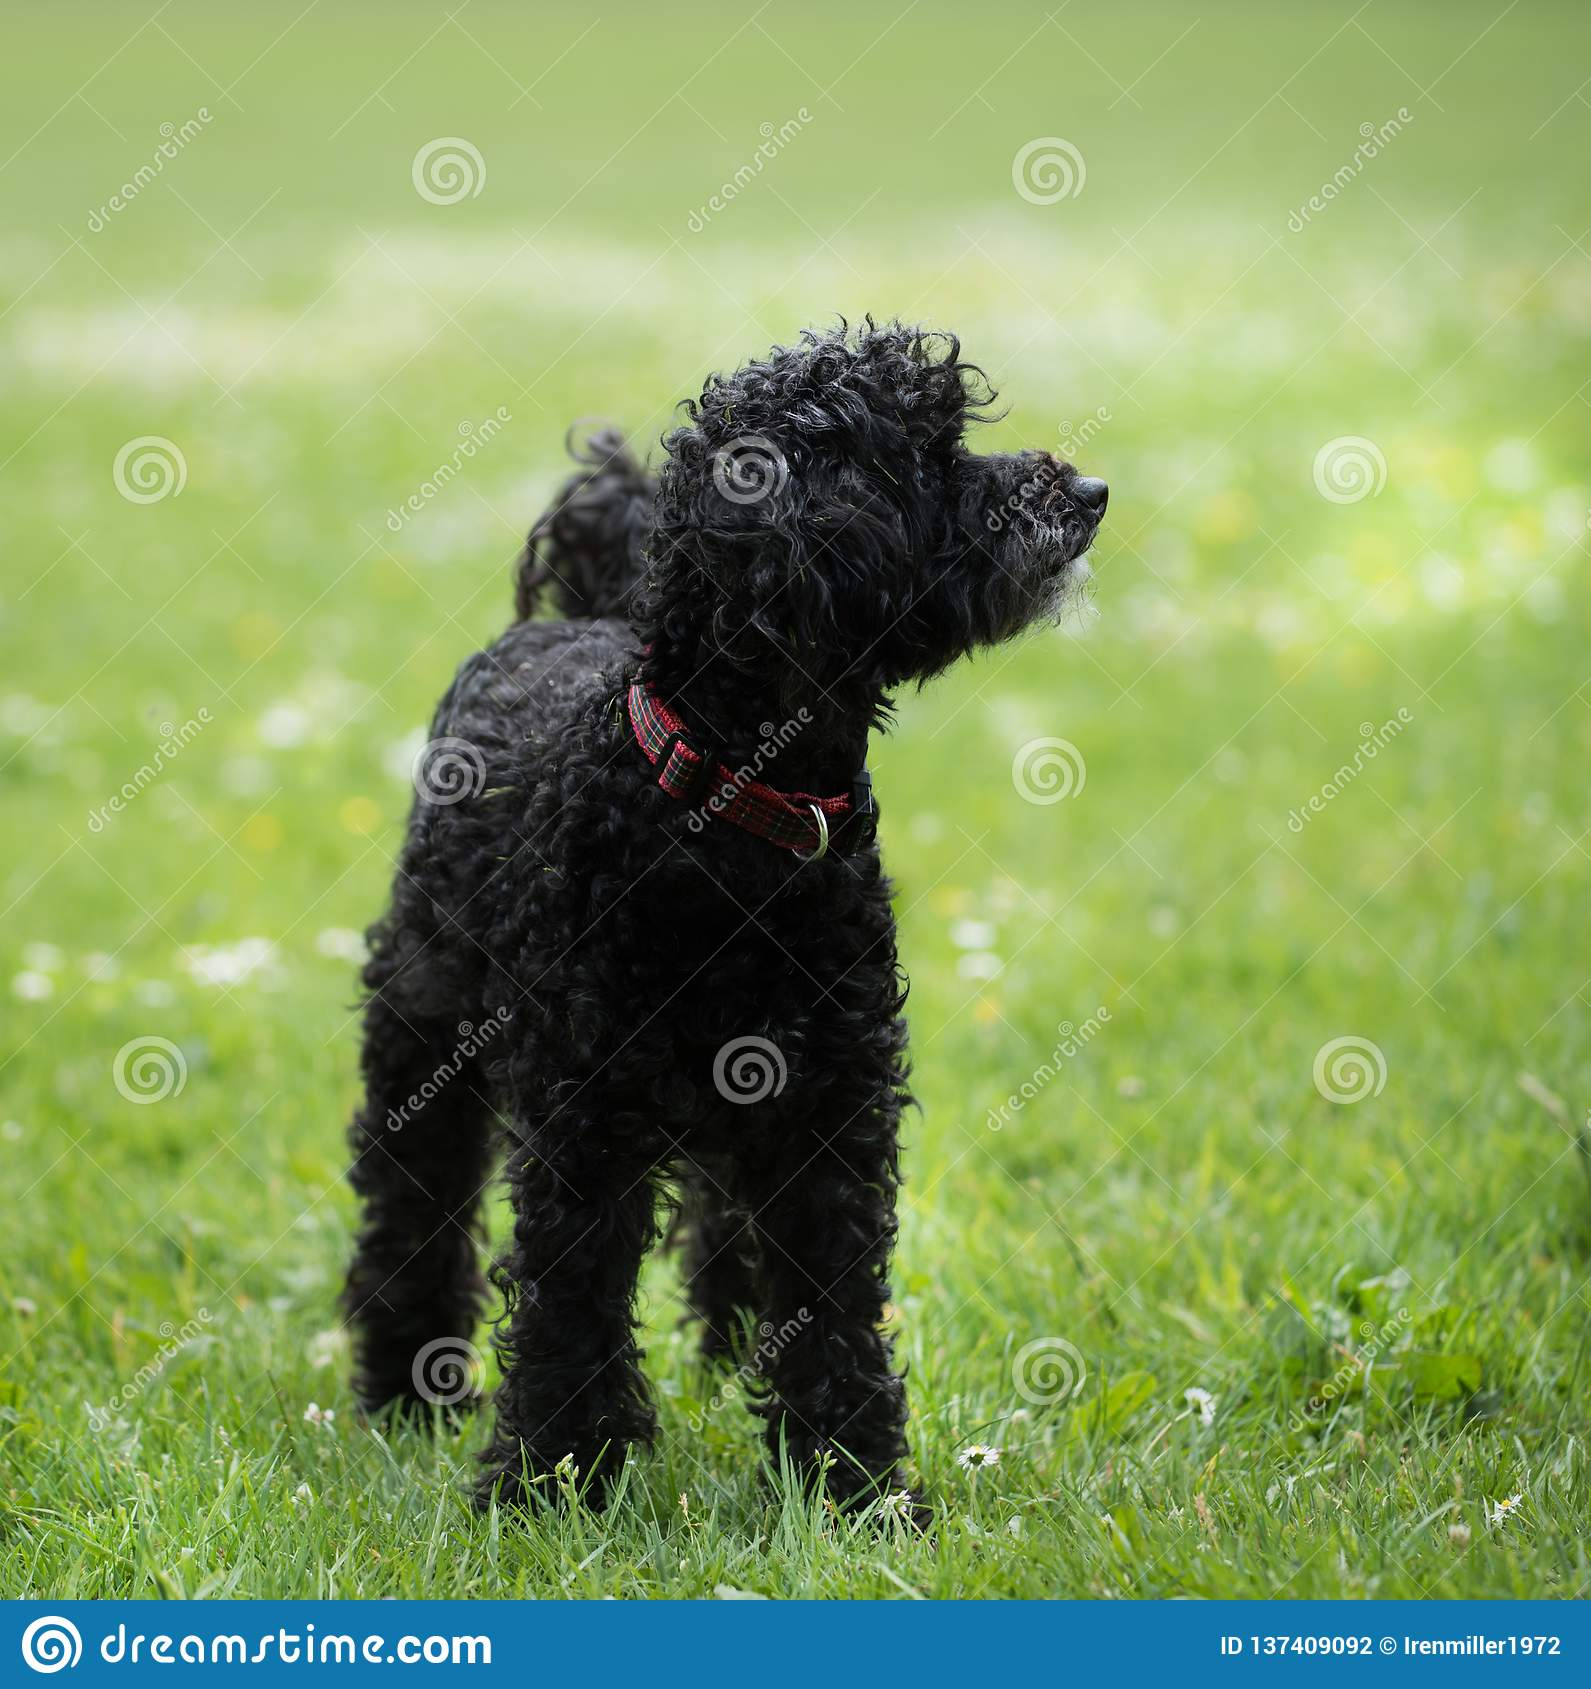 Black poodle staying on grass in a park